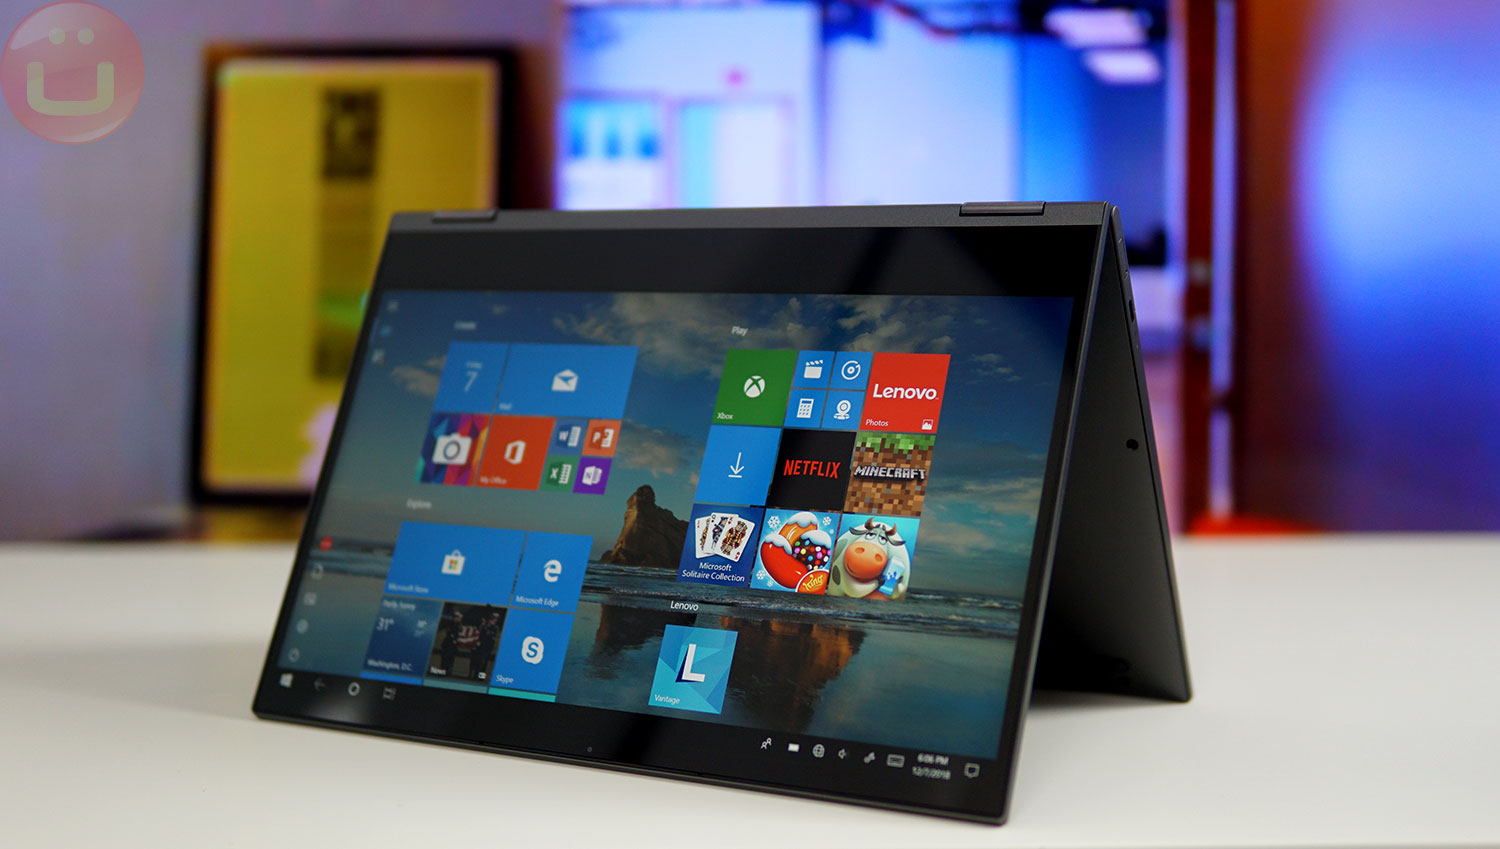 Lenovo Yoga C630 WoS Review: Long battery Life and 4G LTE